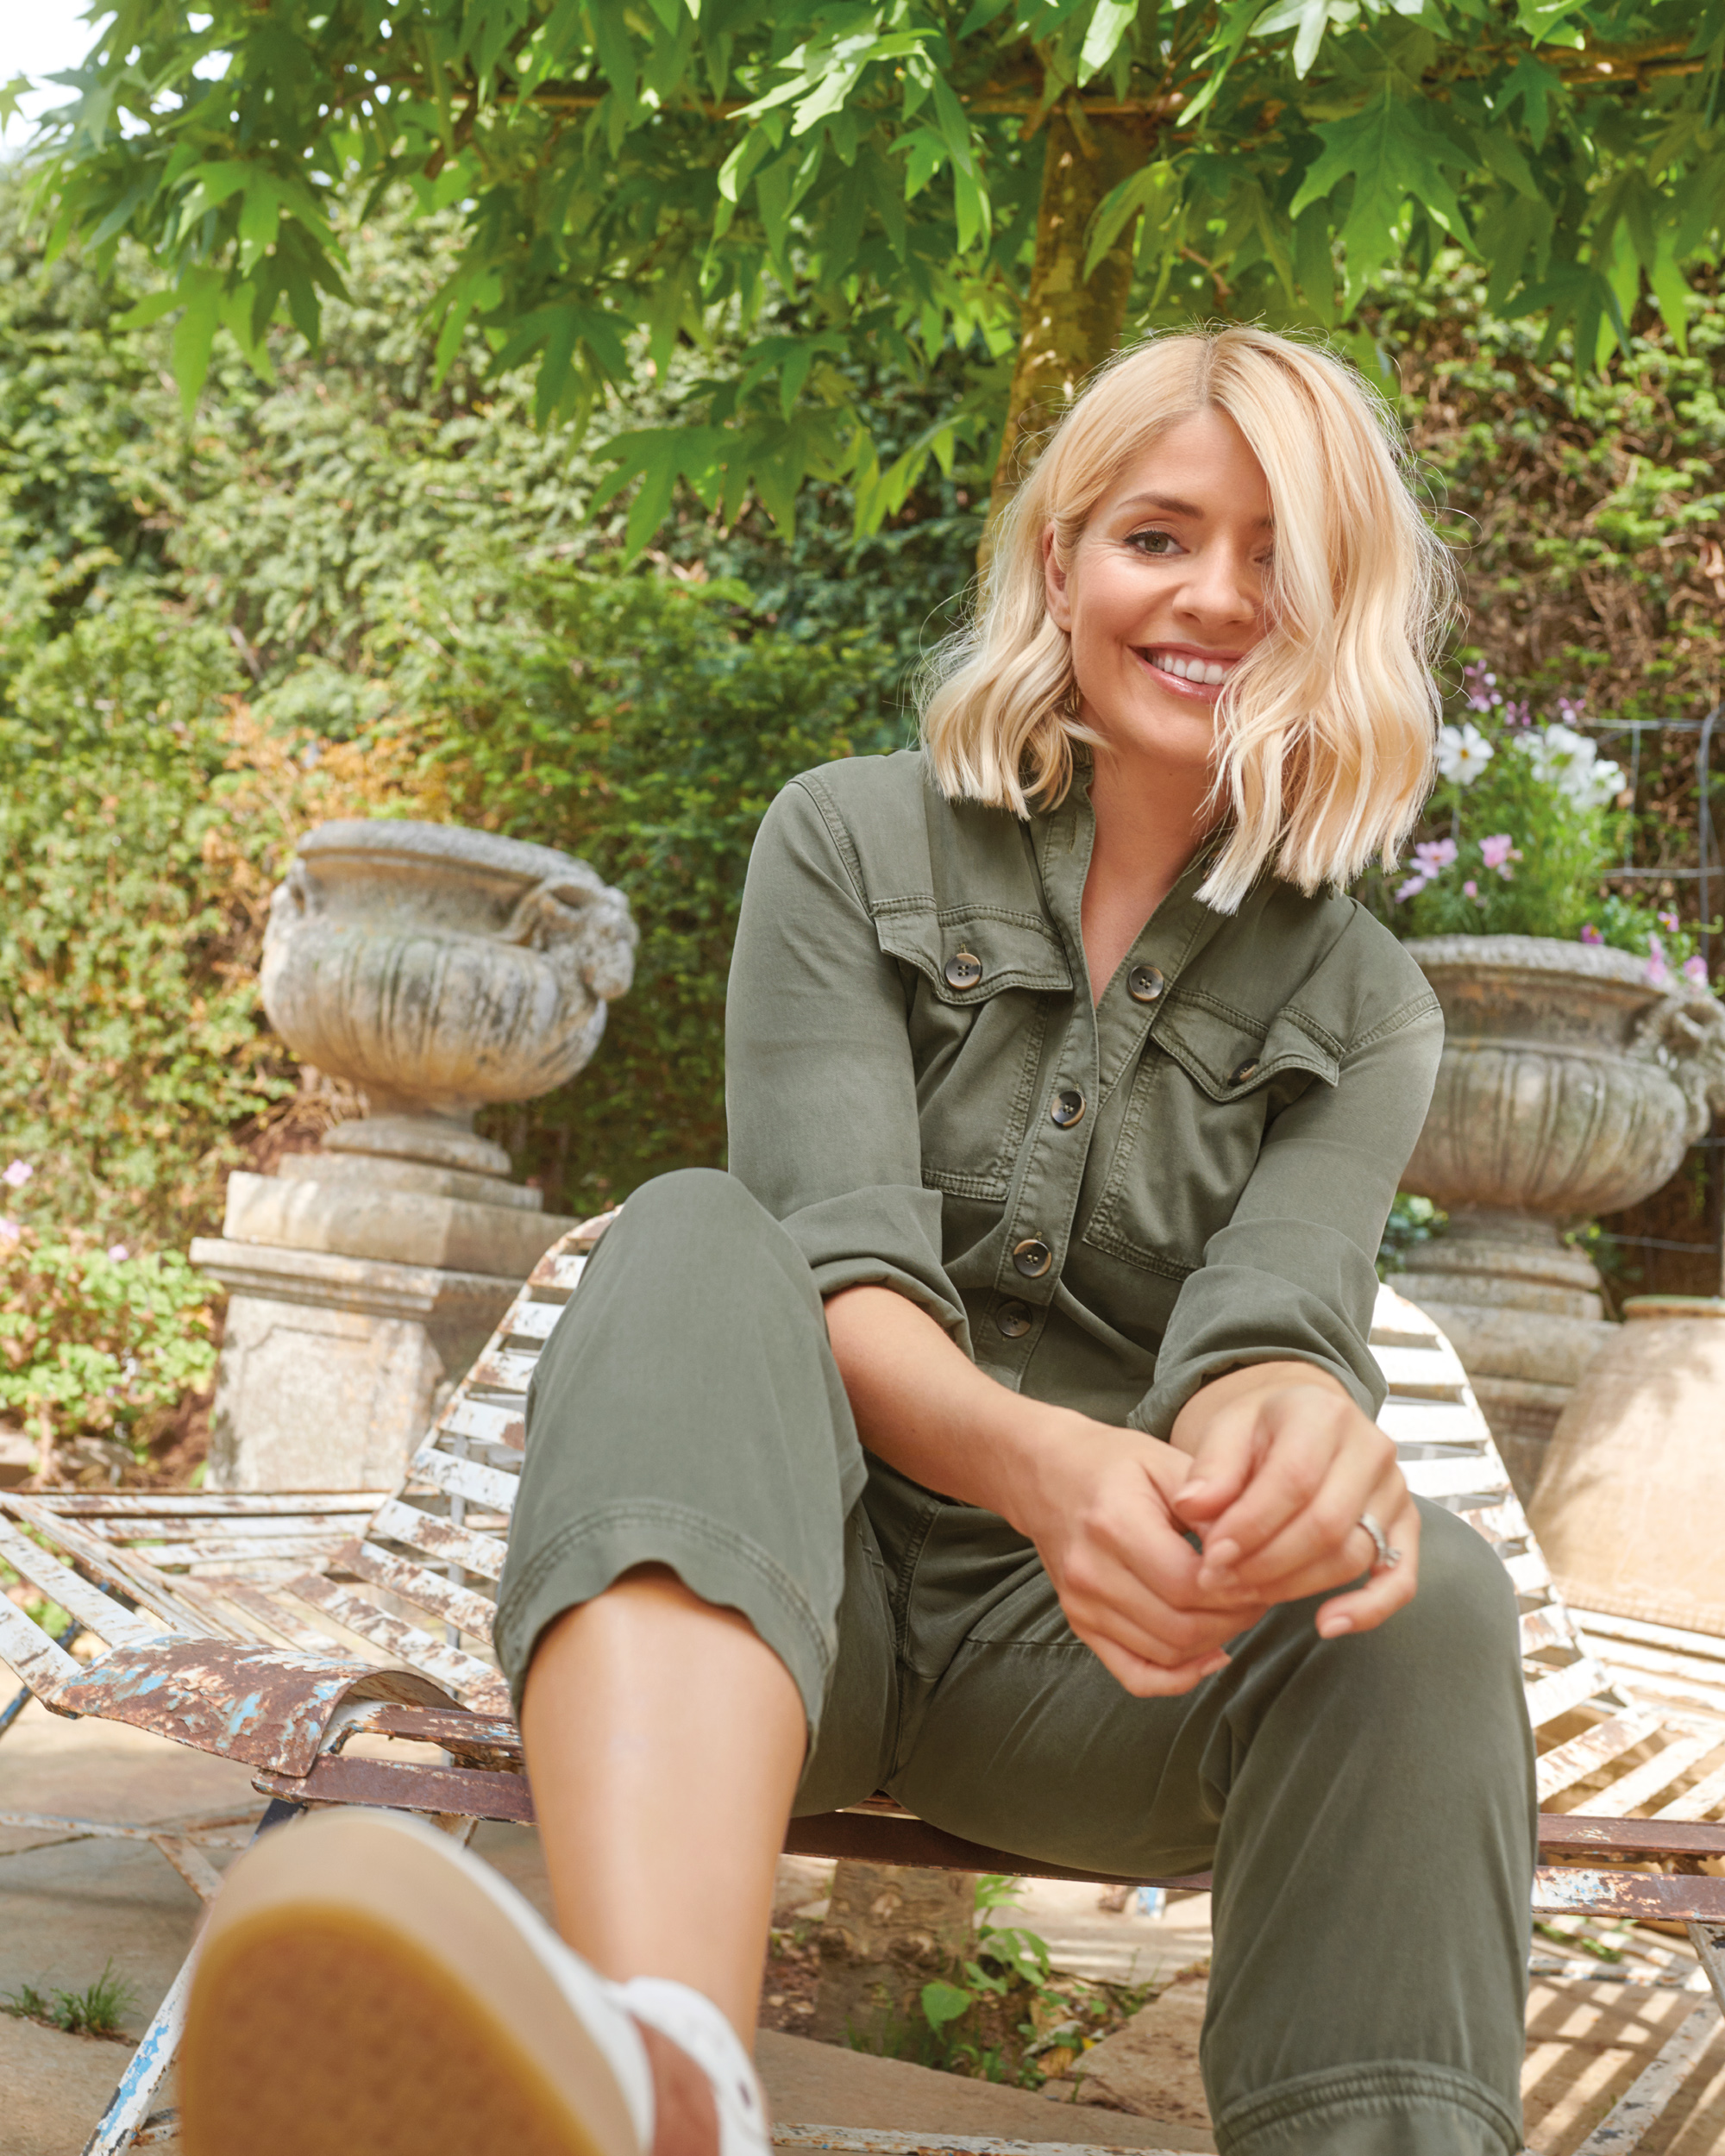 Holly Willoughby wearing the Holly Loves summer edit from M&S